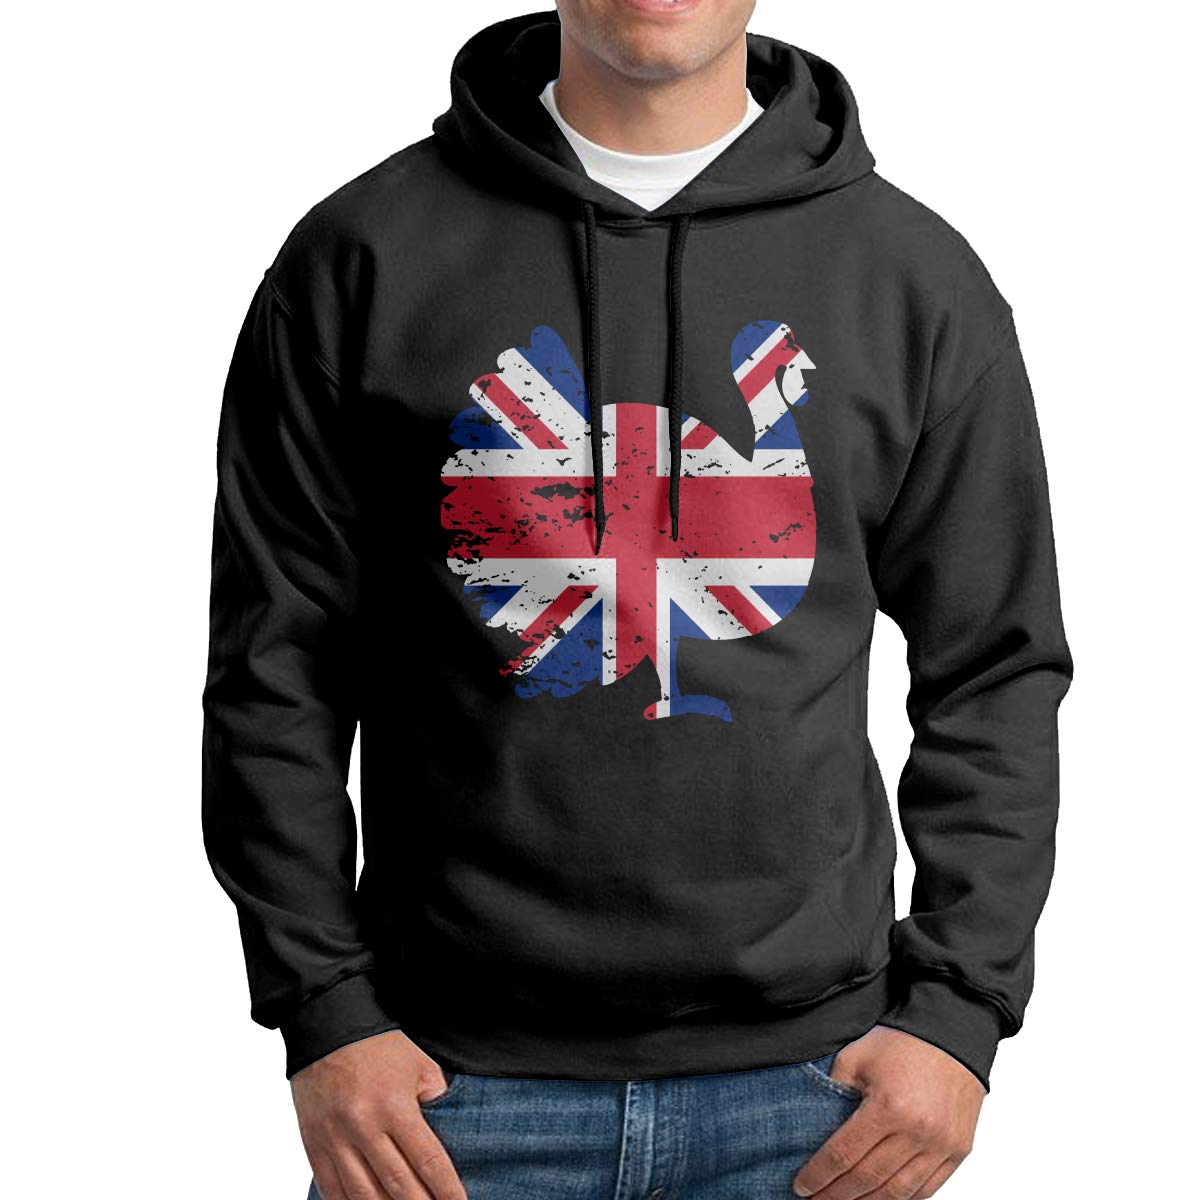 Mens Pullover Hoodies Patriotic Turkey British Flag Long Sleeve Fleece Hooded Sweatshirt Sweater Blouses Tops